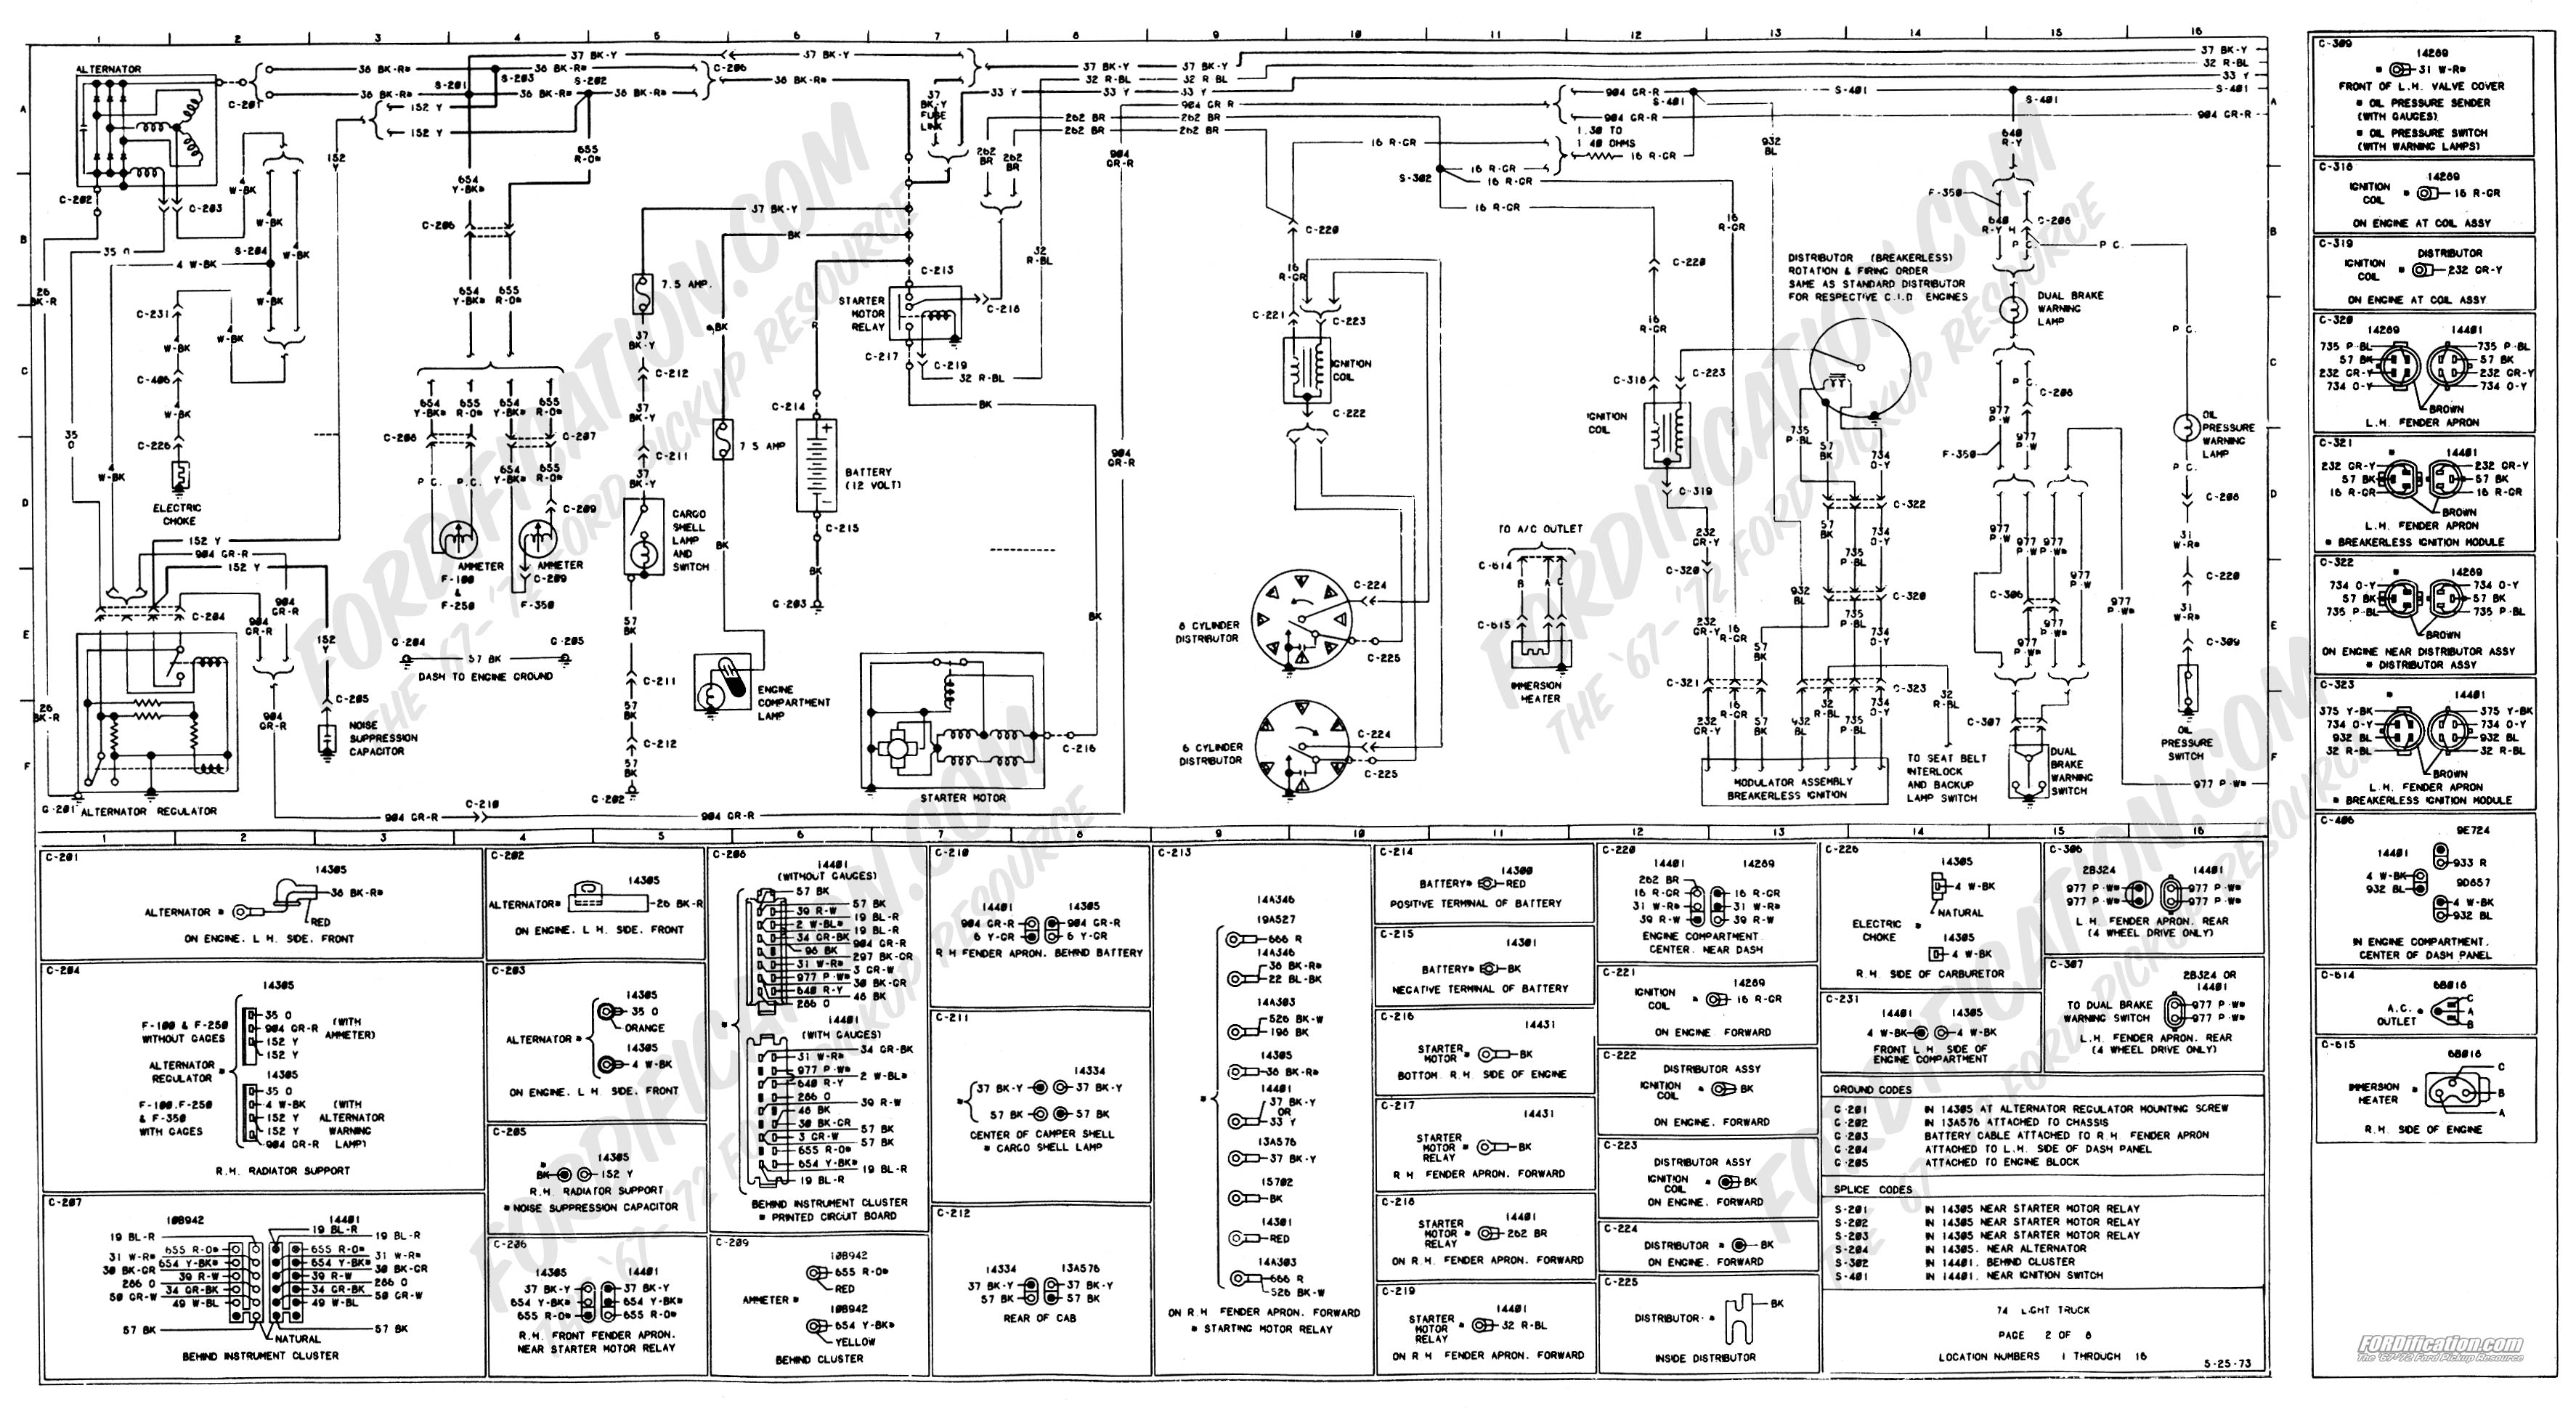 [SCHEMATICS_43NM]  1973-1979 Ford Truck Wiring Diagrams & Schematics - FORDification.net | 1984 Ford L9000 Truck Wiring Diagrams |  | FORDification.net